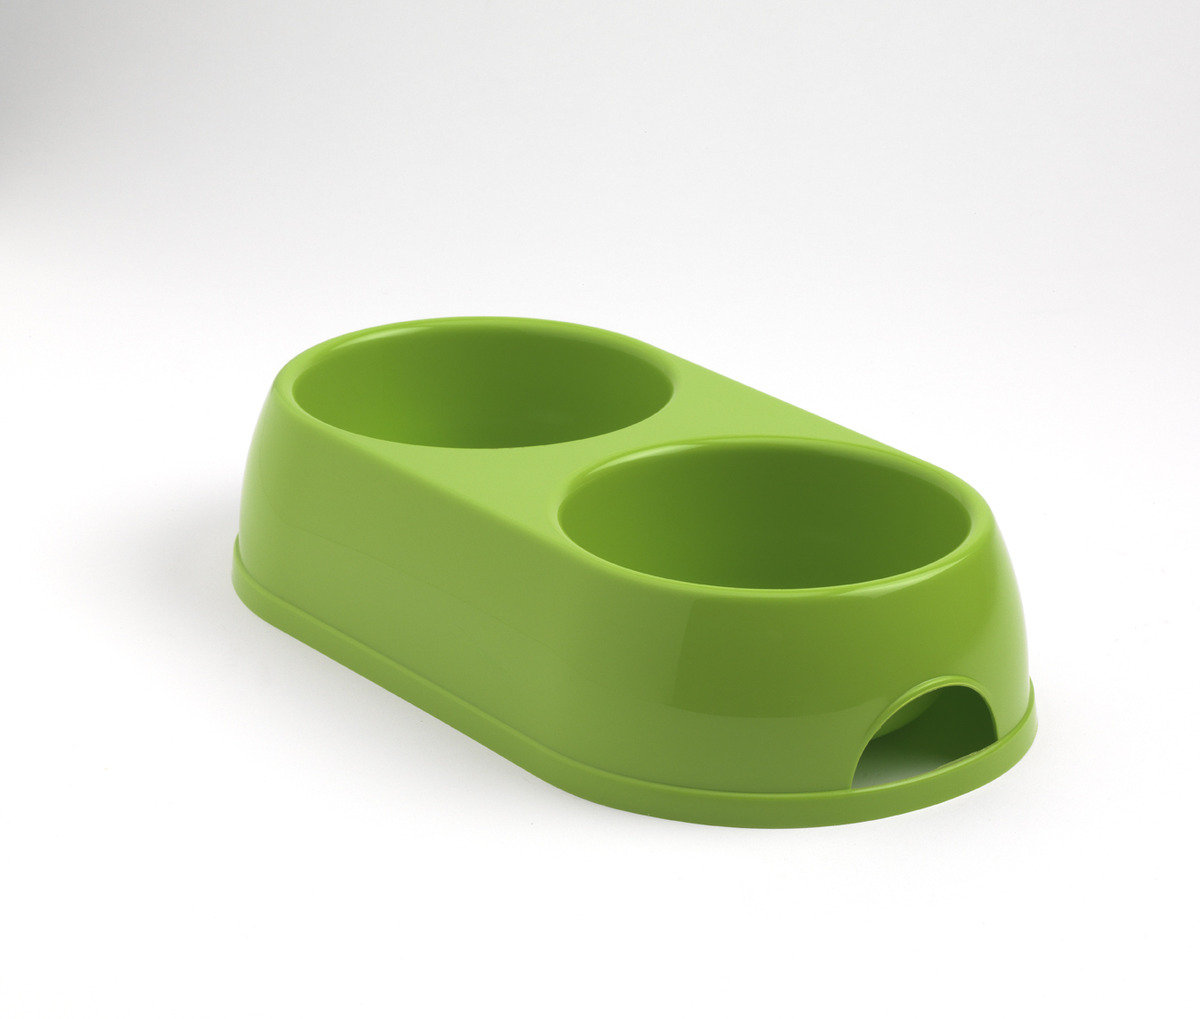 Double Bowl H121 - Light Green (Import from Europe)